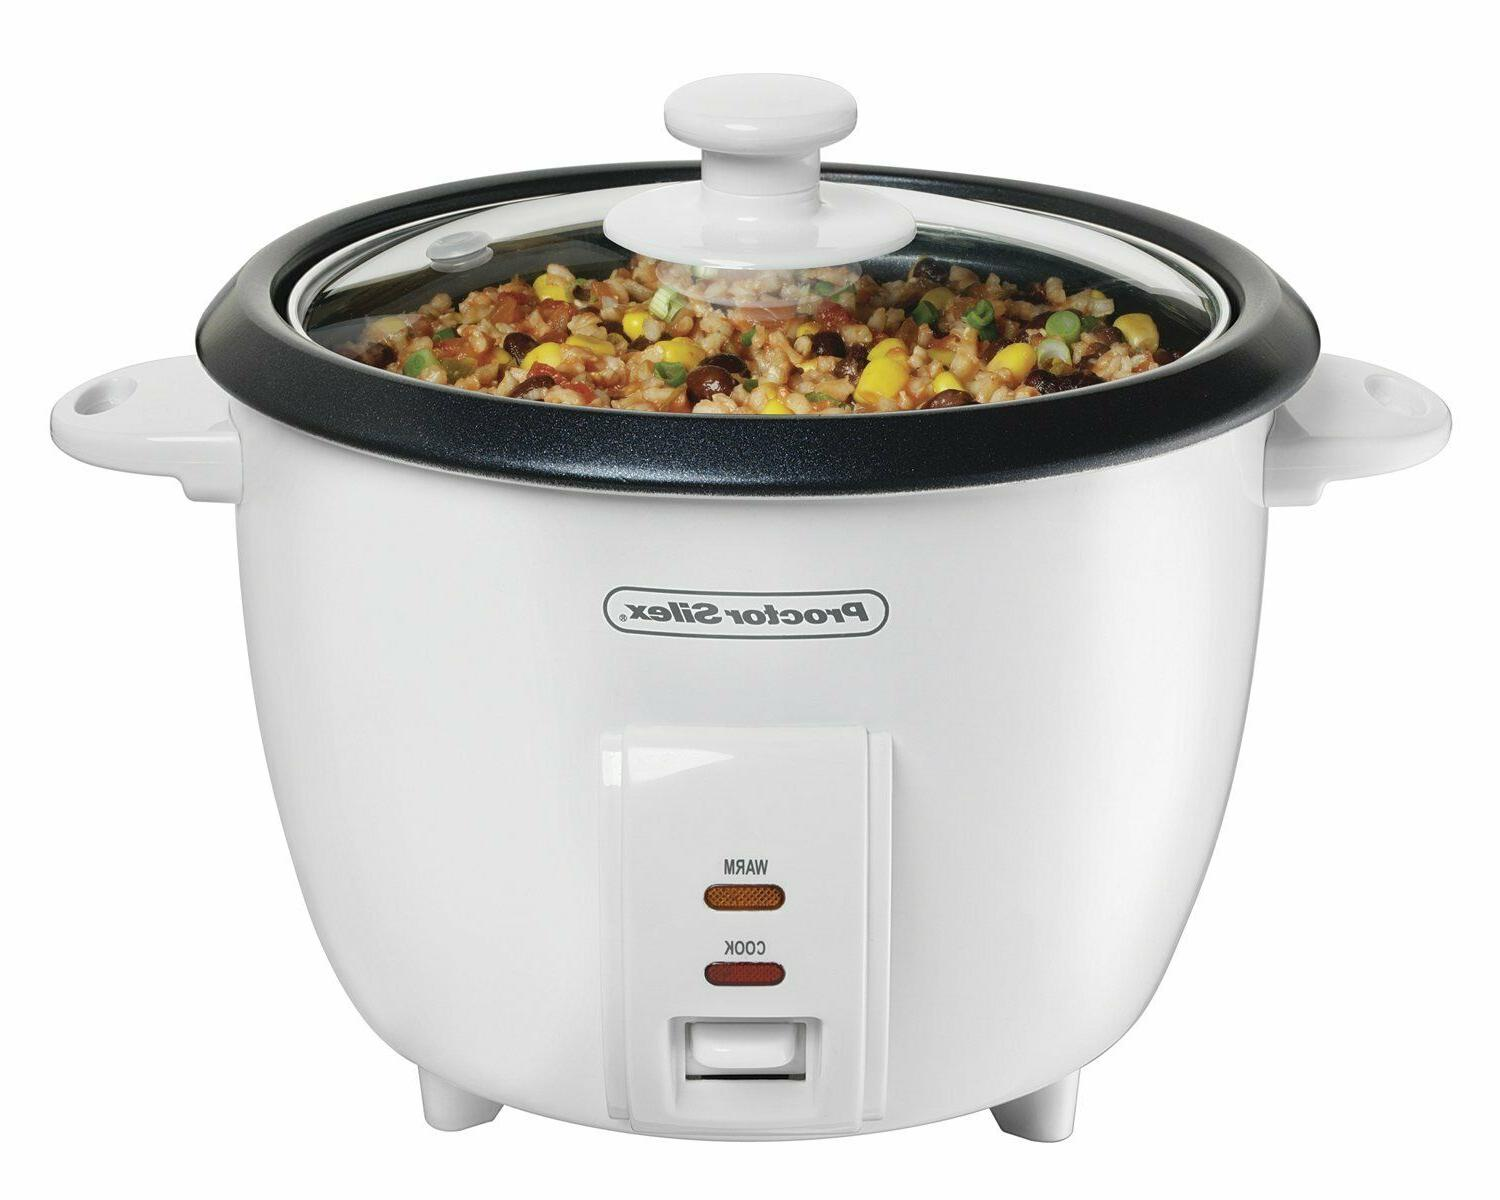 RICE COOKER 5 Cup Uncooked Nonstick Warm Steam Cooking Pot E